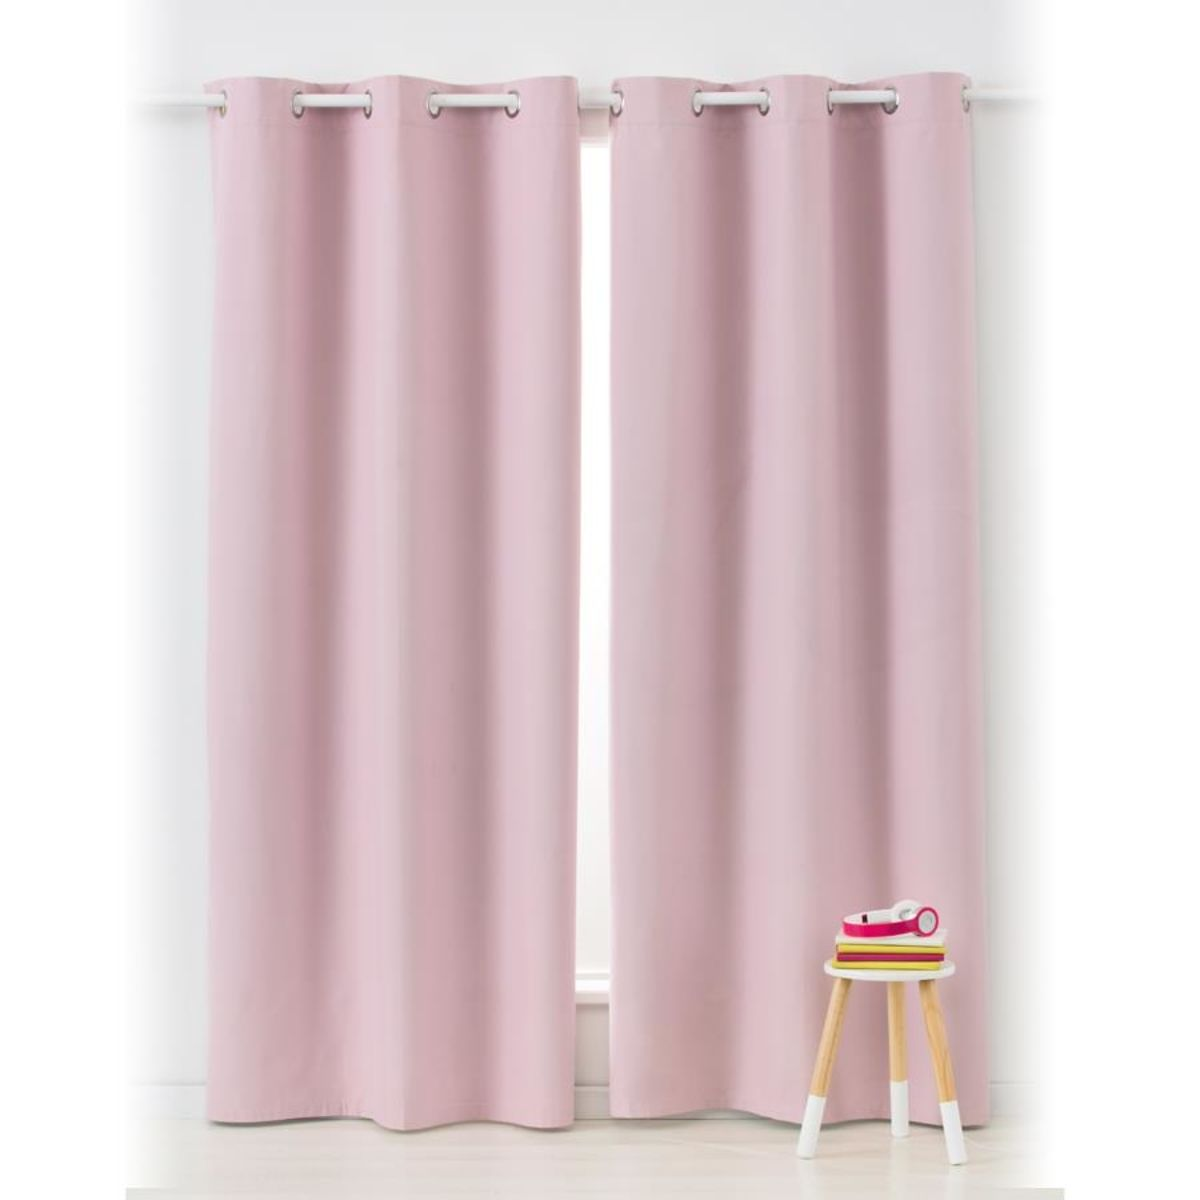 Pack Of 2 Curtains Pink Roomates Block Out Curtains Kmart Decor Pink Girl Room